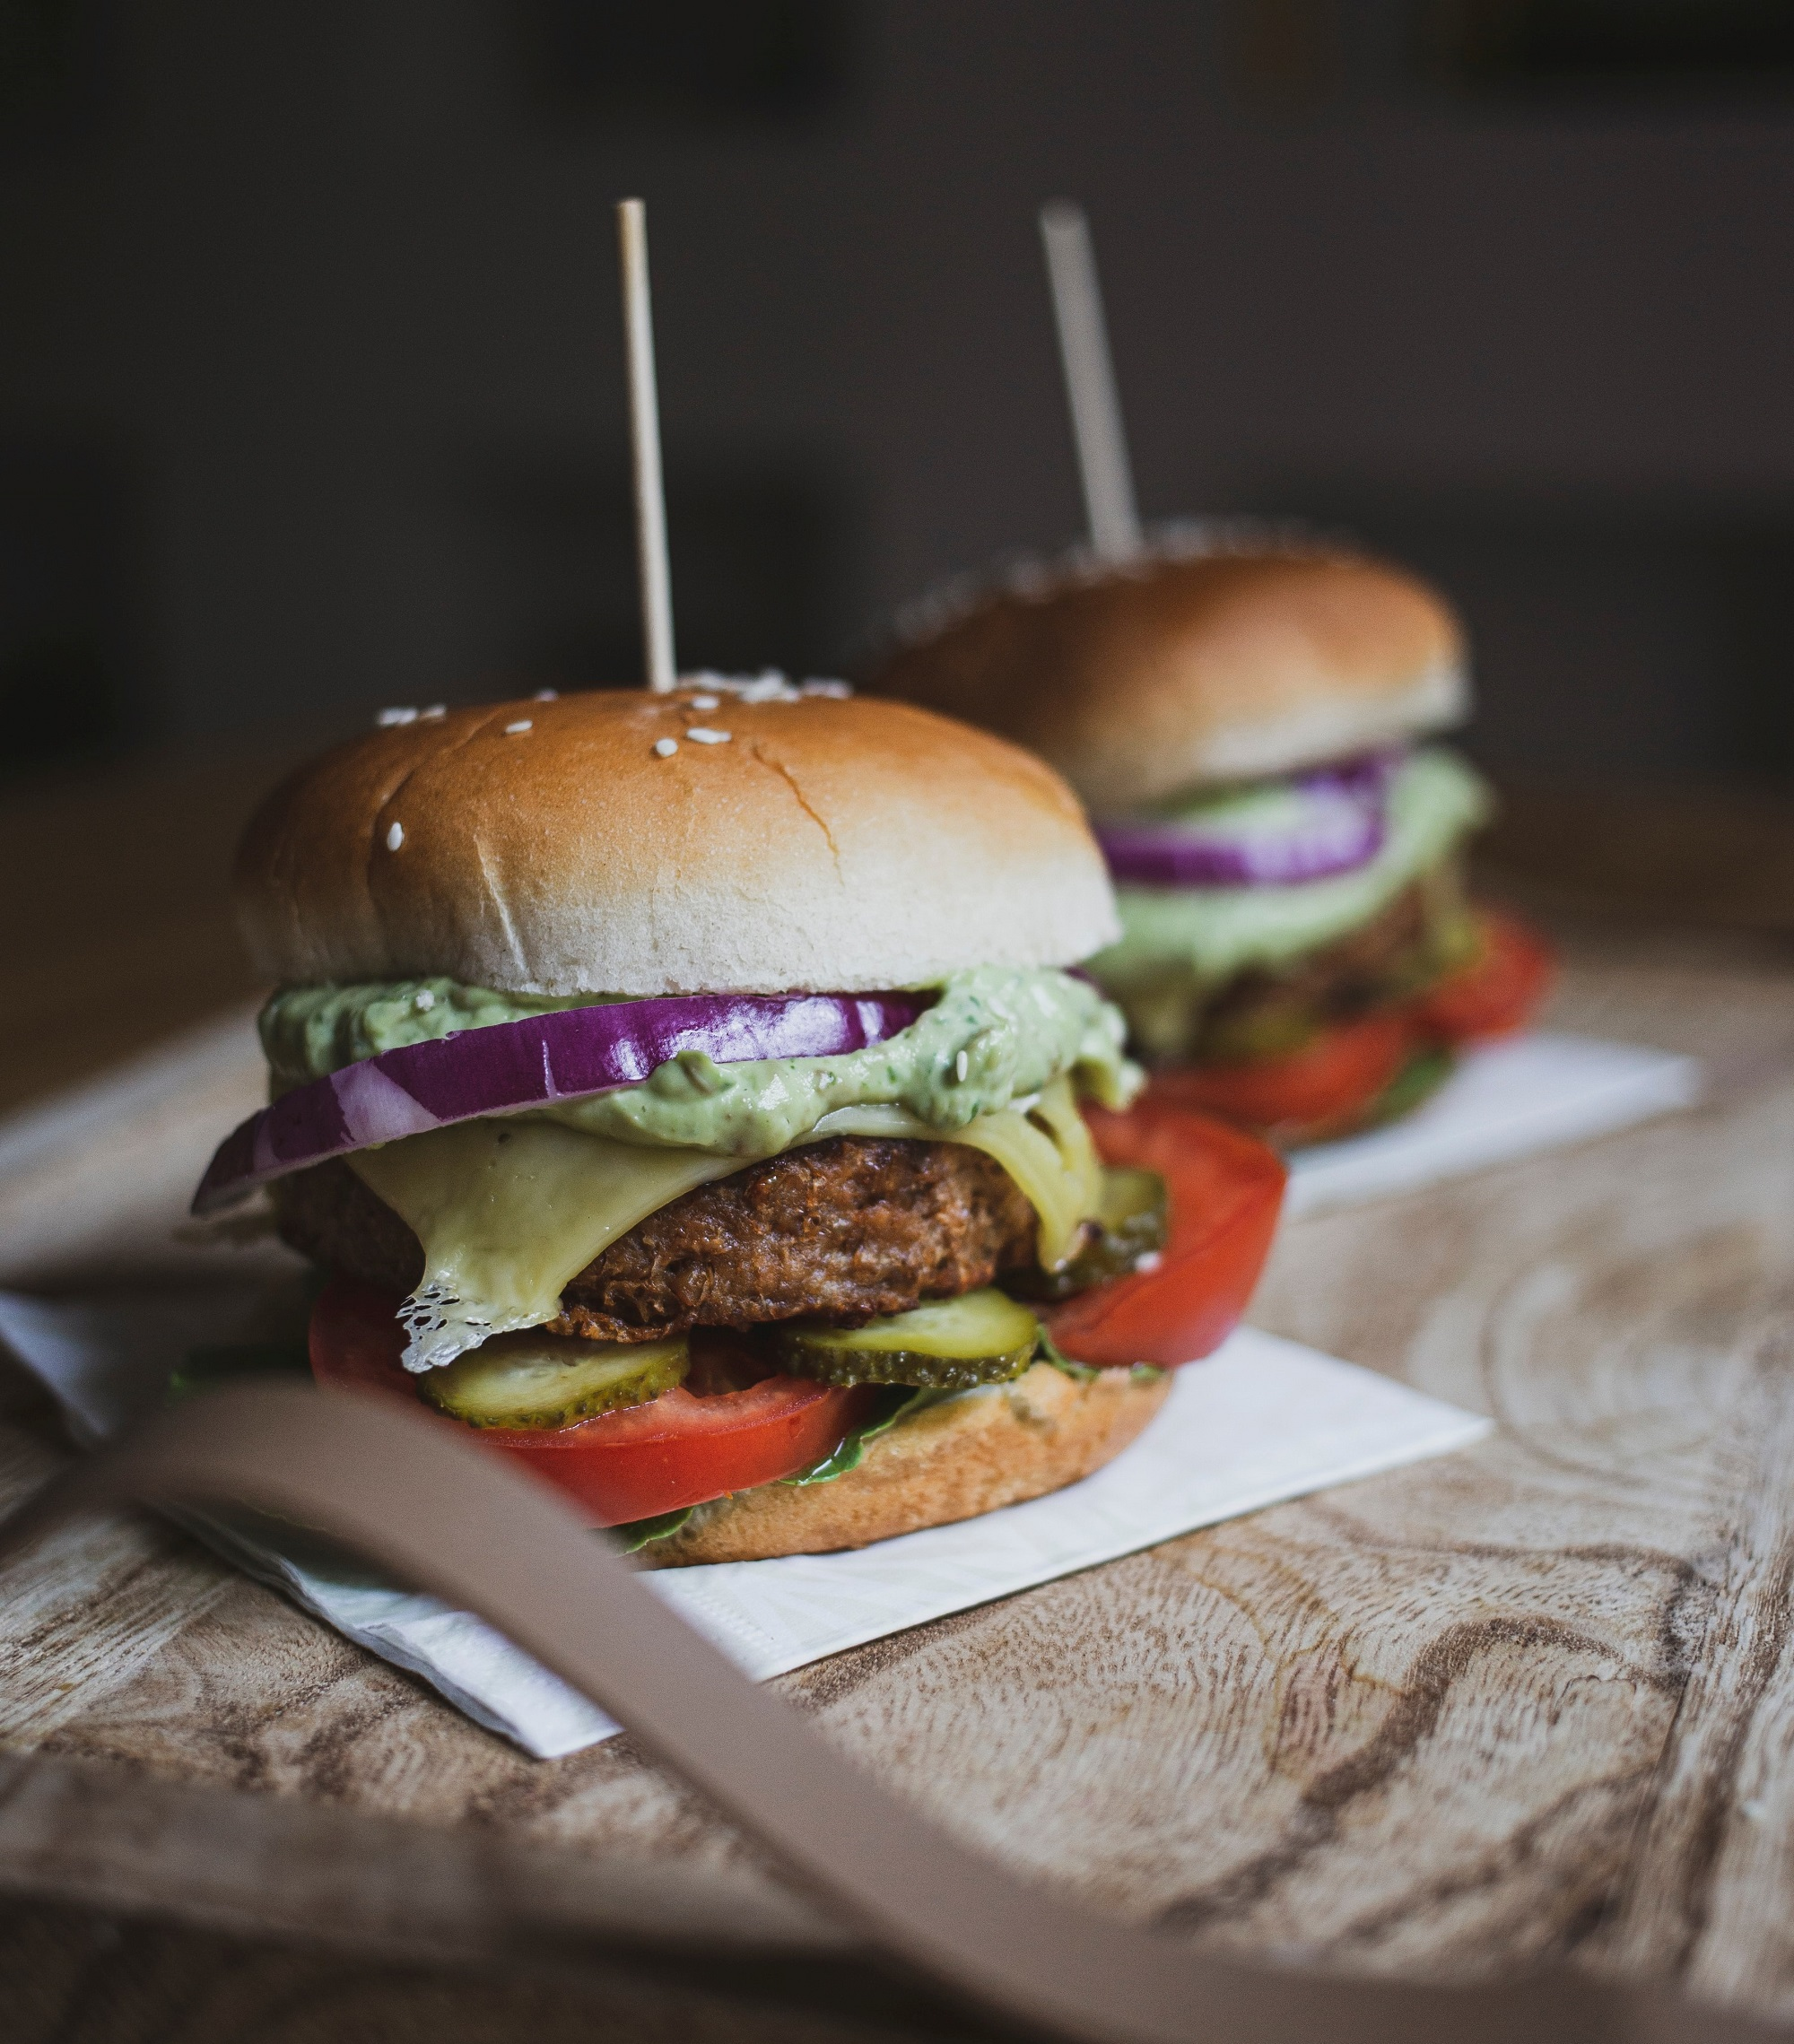 Trick A Carnivore With These Insanely Good Vegan Burgers